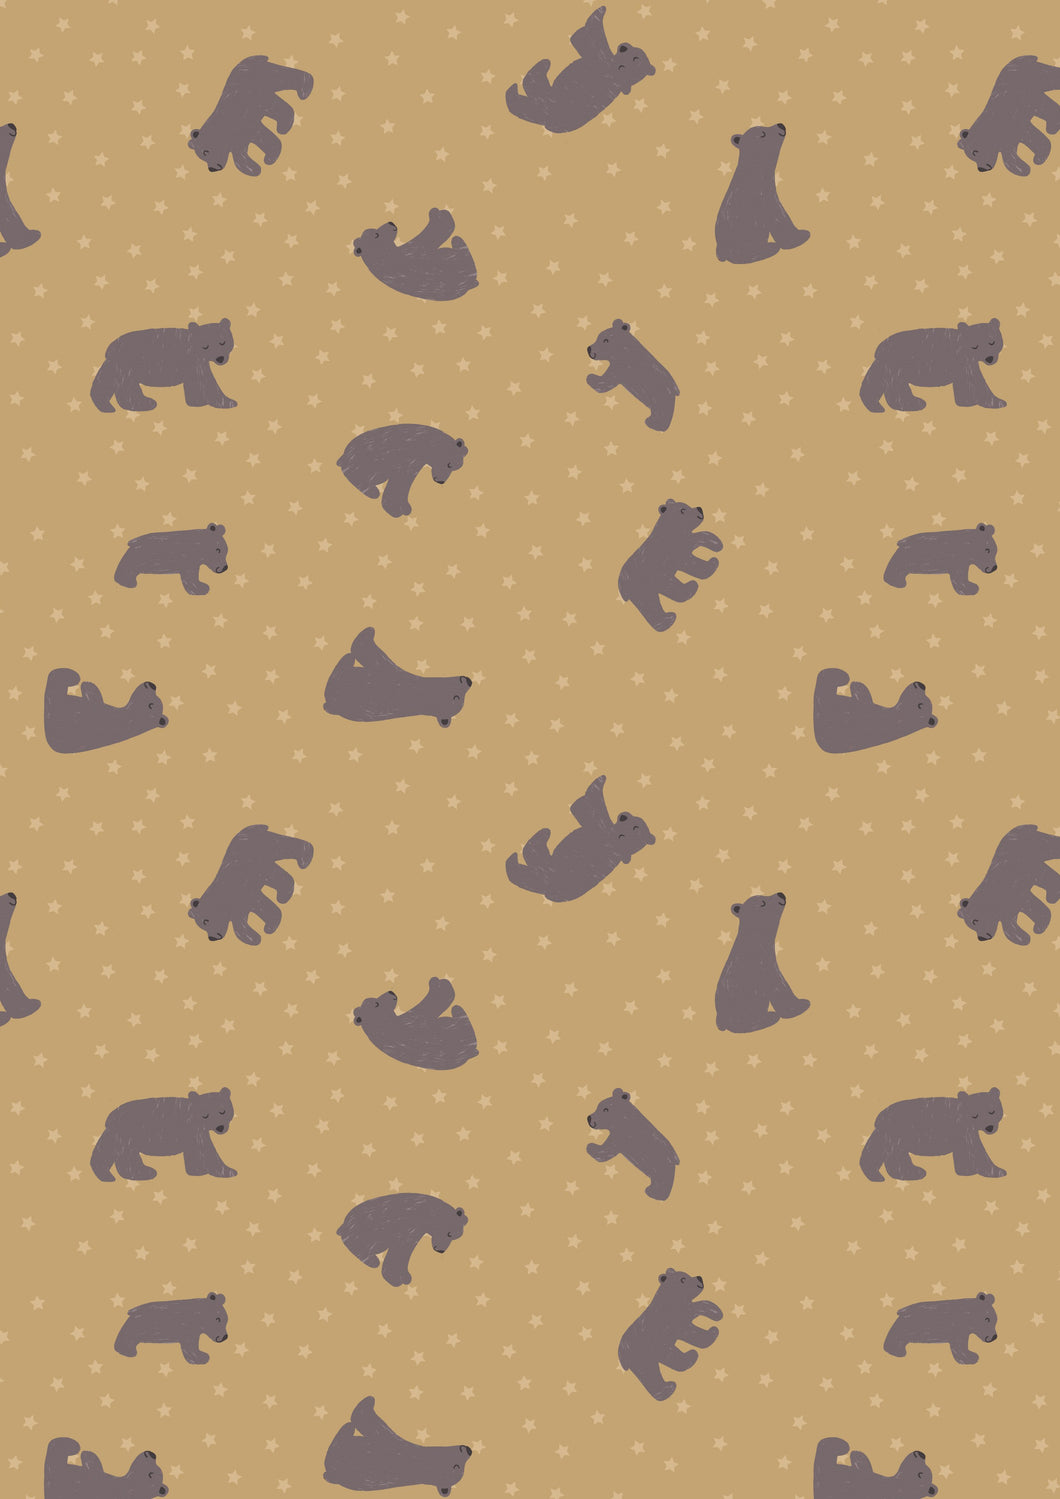 Bear Hug Starry Bear Ochre Fabric by Lewis & Irene